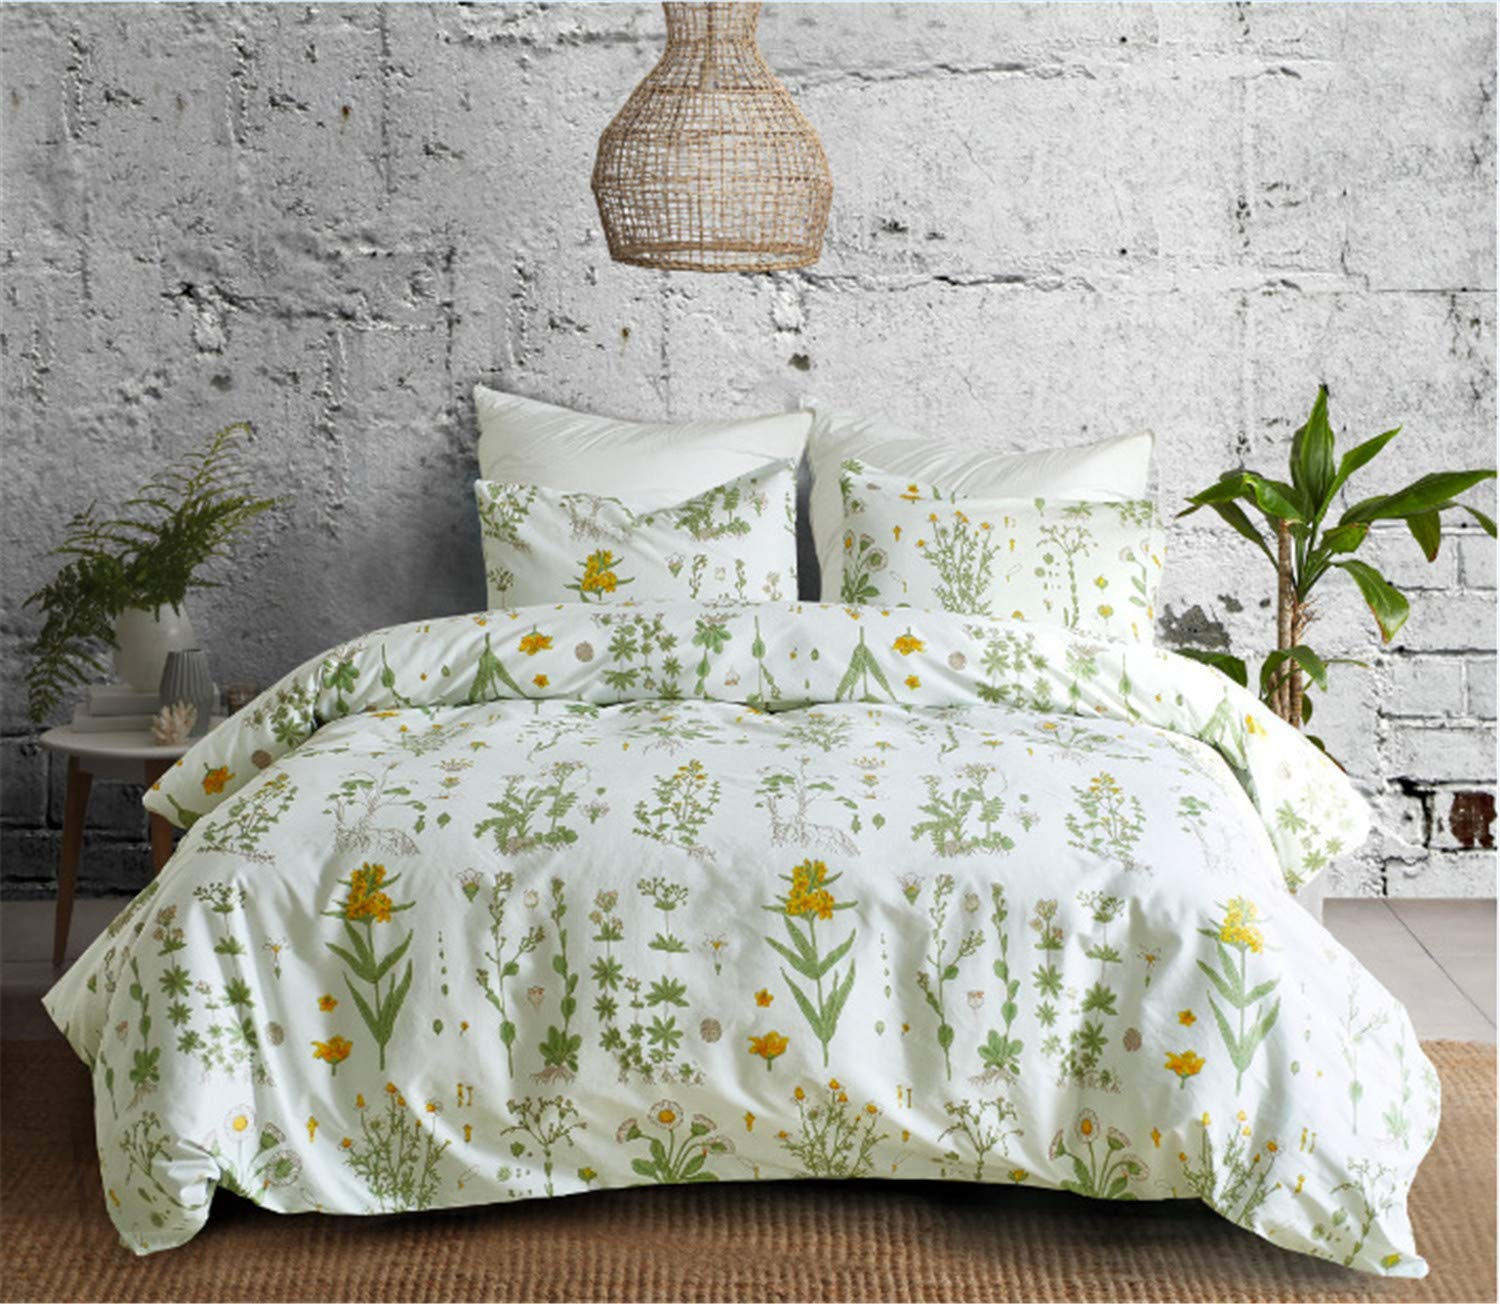 "YULUOSHA Girl's Yellow Flower Duvet Cover Set Queen 90""x90"",Natural Floral Leaves Printed Pattern Lightweight Microfiber Modern Bedding 3 Pieces with Zipper,1 Duvet Cover 2 Pillowcases"